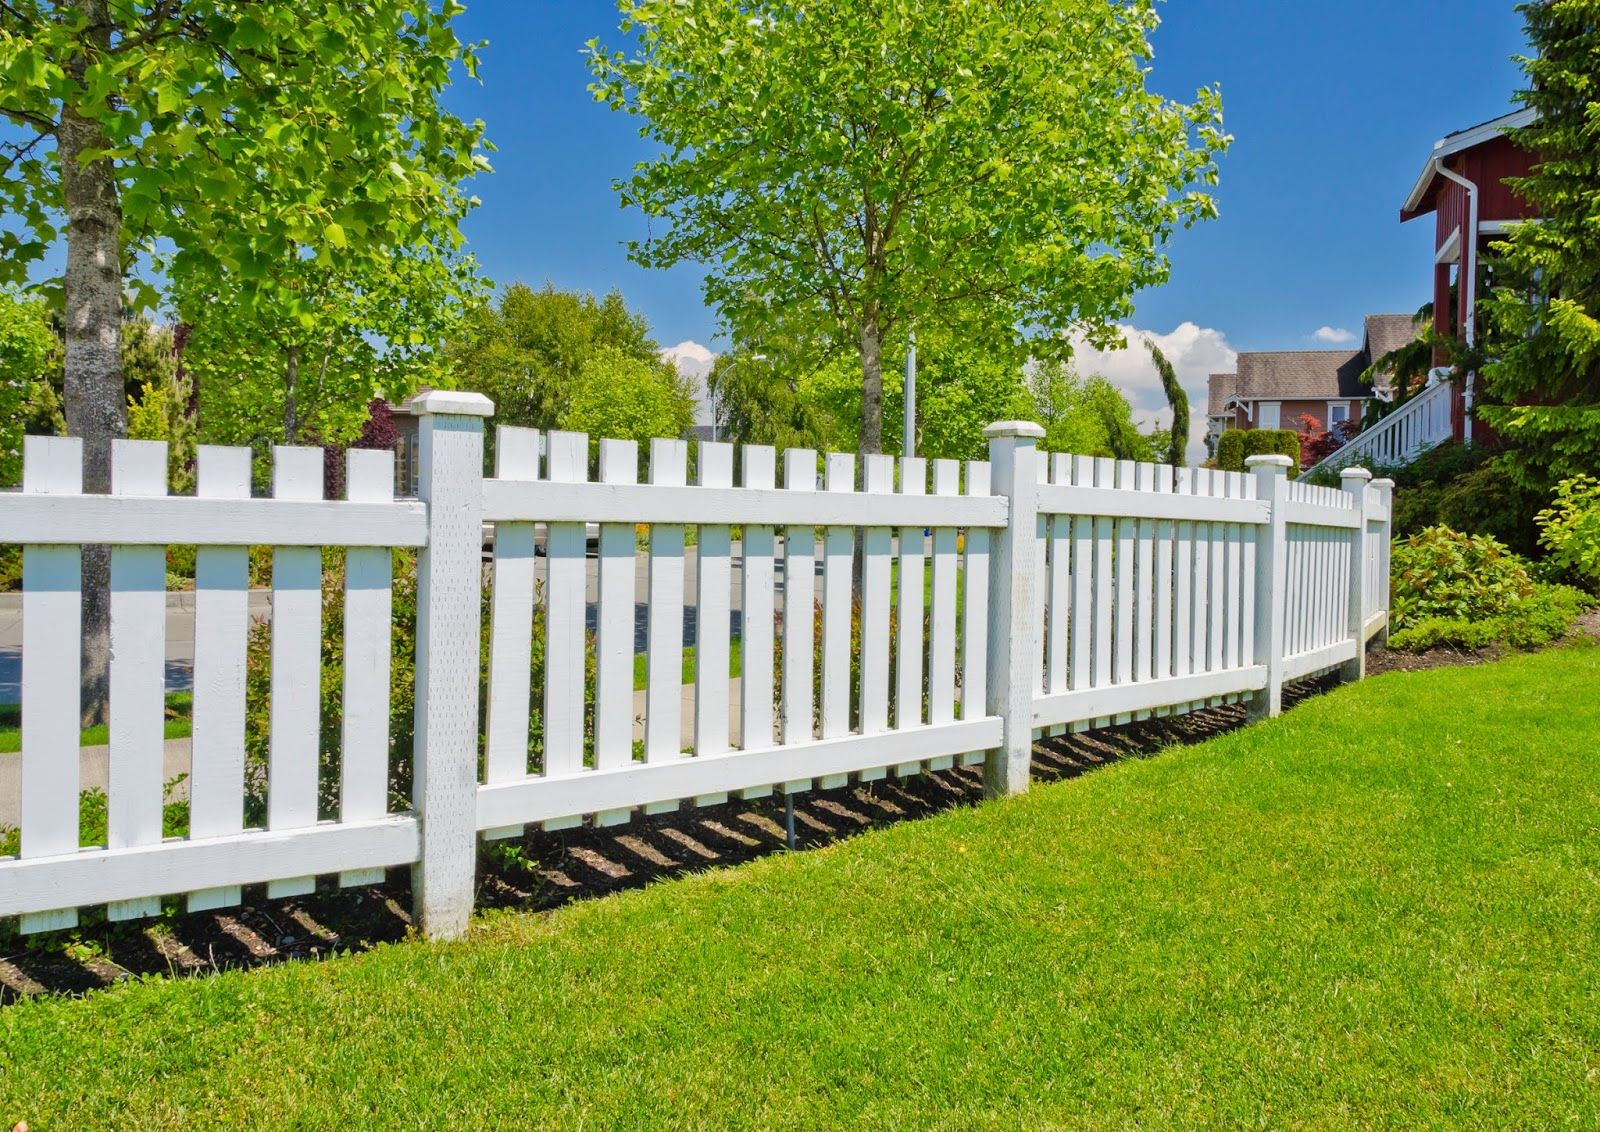 white fence post. Post And Rail Fence : Fence- Ferment Attractive, Long Last. White